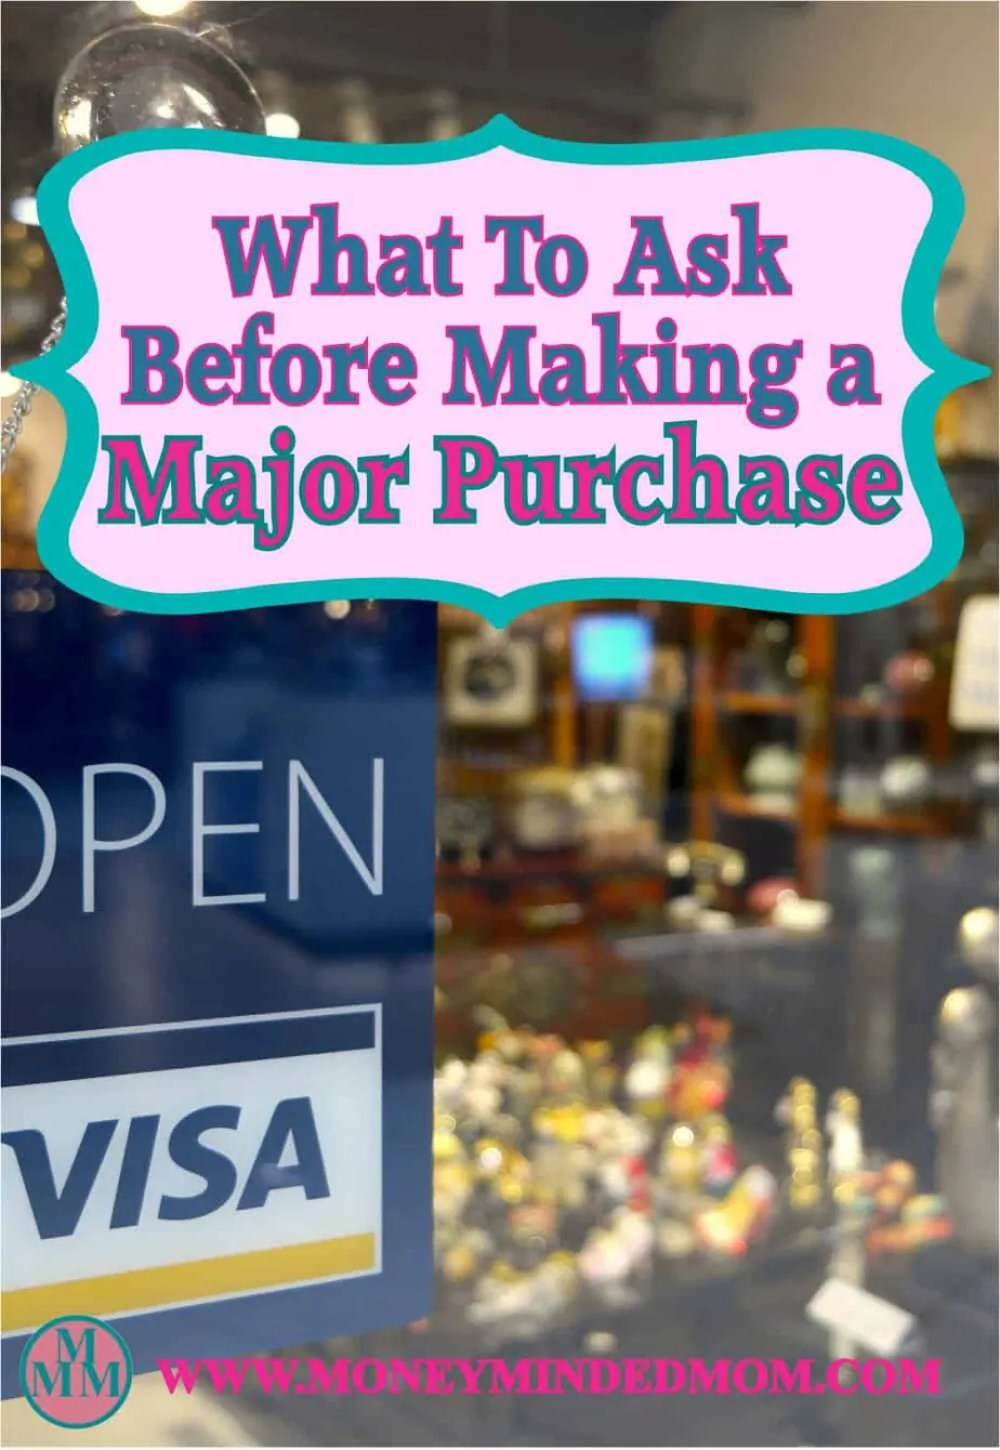 What To Ask Before Making a Major Purchase